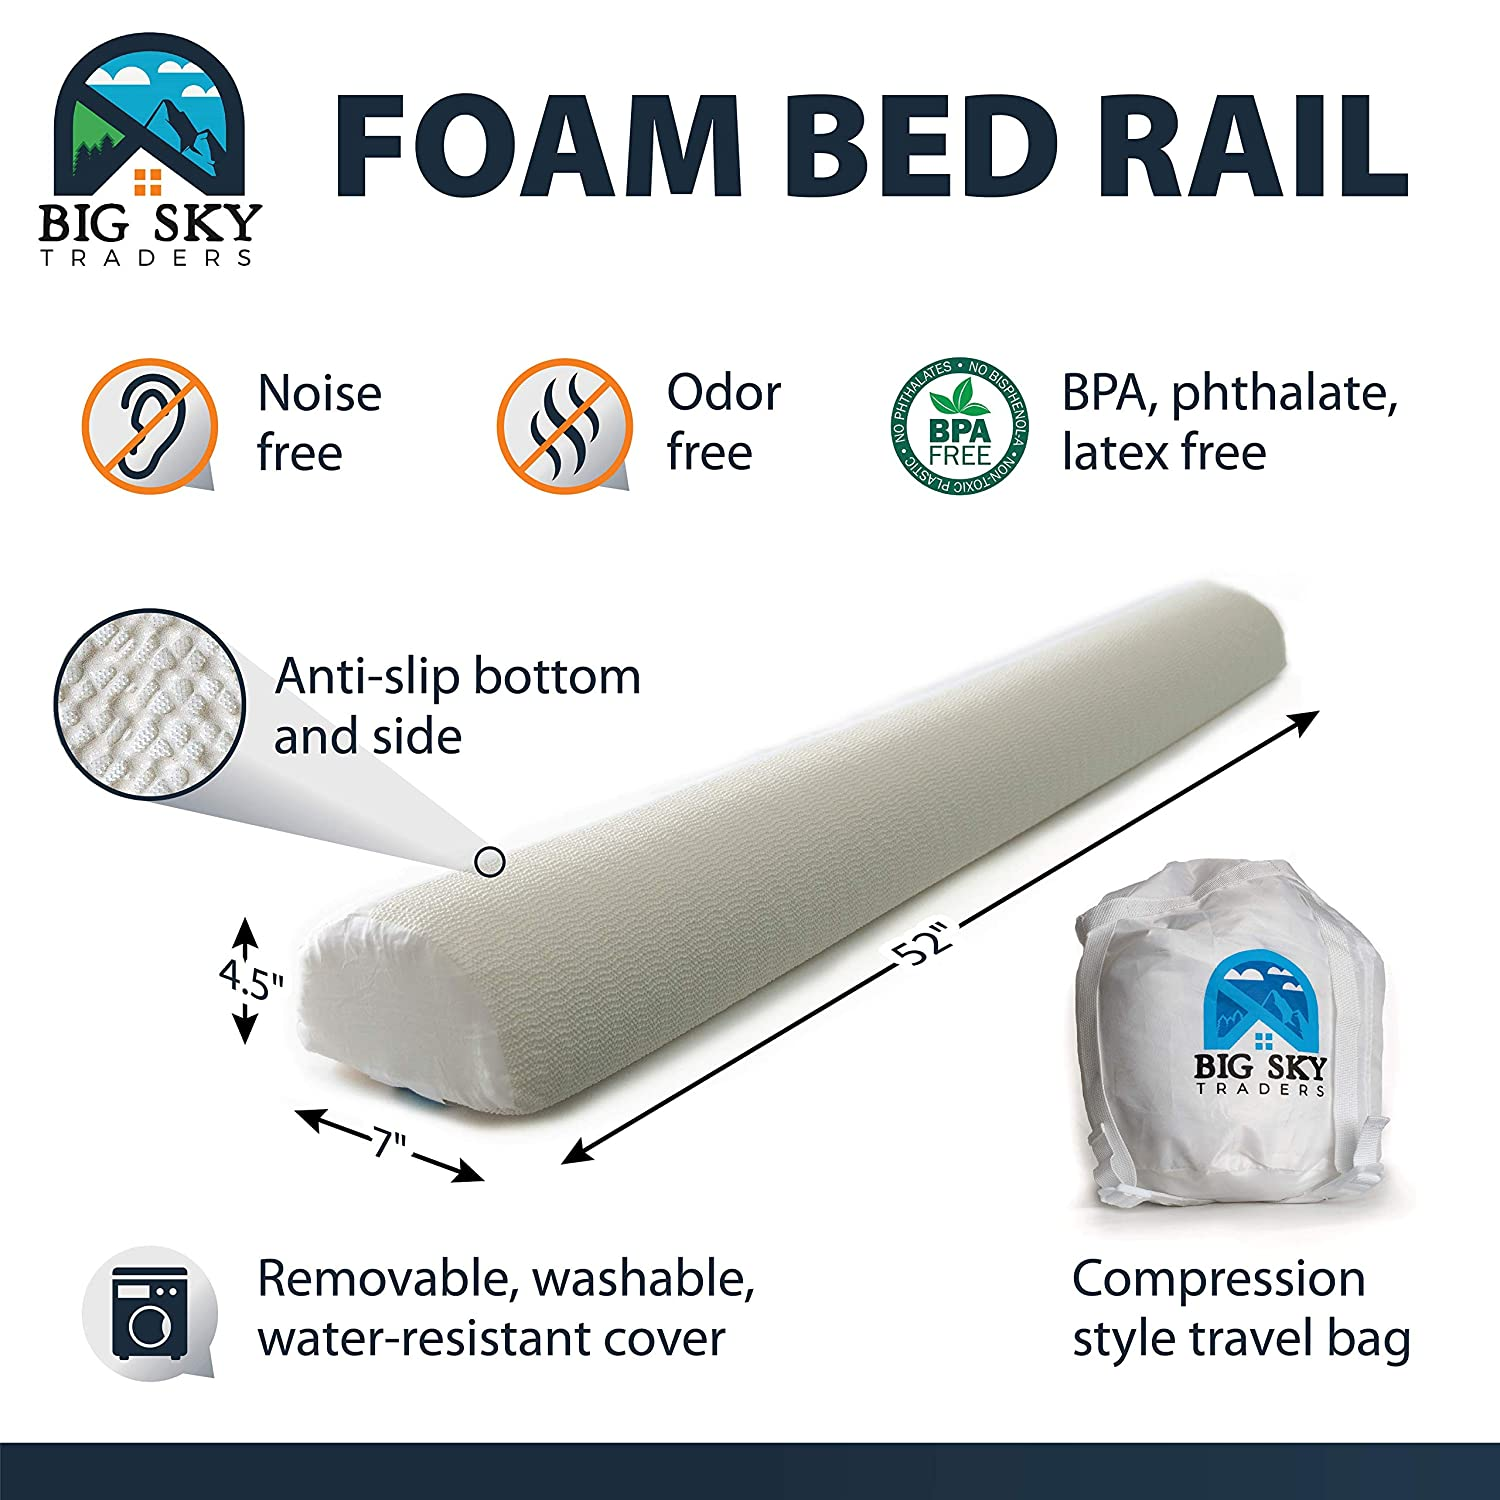 Bumper//Pillow Pad -Single Pack- for Baby Queen /& King Sleeping Child//Kid Transition to Twin Bed Guard Water-Resistant Washable Cover NO Bag Included Foam Toddler Safety Side Rail with Non-Slip